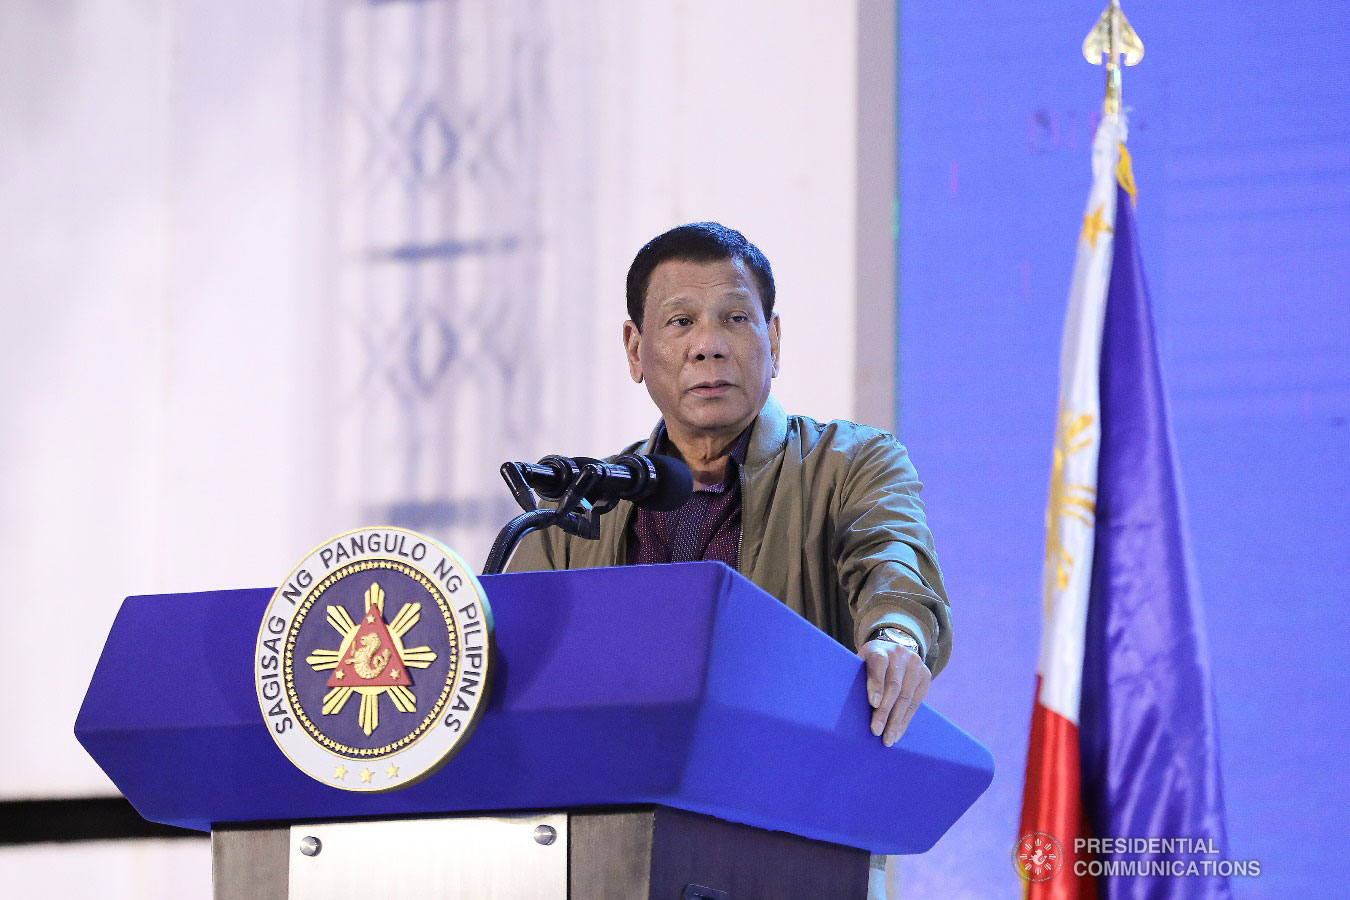 President Rodrigo Roa Duterte delivers his message during the birthday celebration of former Presidential Adviser on Political Affairs Atty. Francis Tolentino held at the Tagaytay International Convention Center in Tagaytay City, Cavite on January 3, 2019. VALERIE ESCALERA/PRESIDENTIAL PHOTO